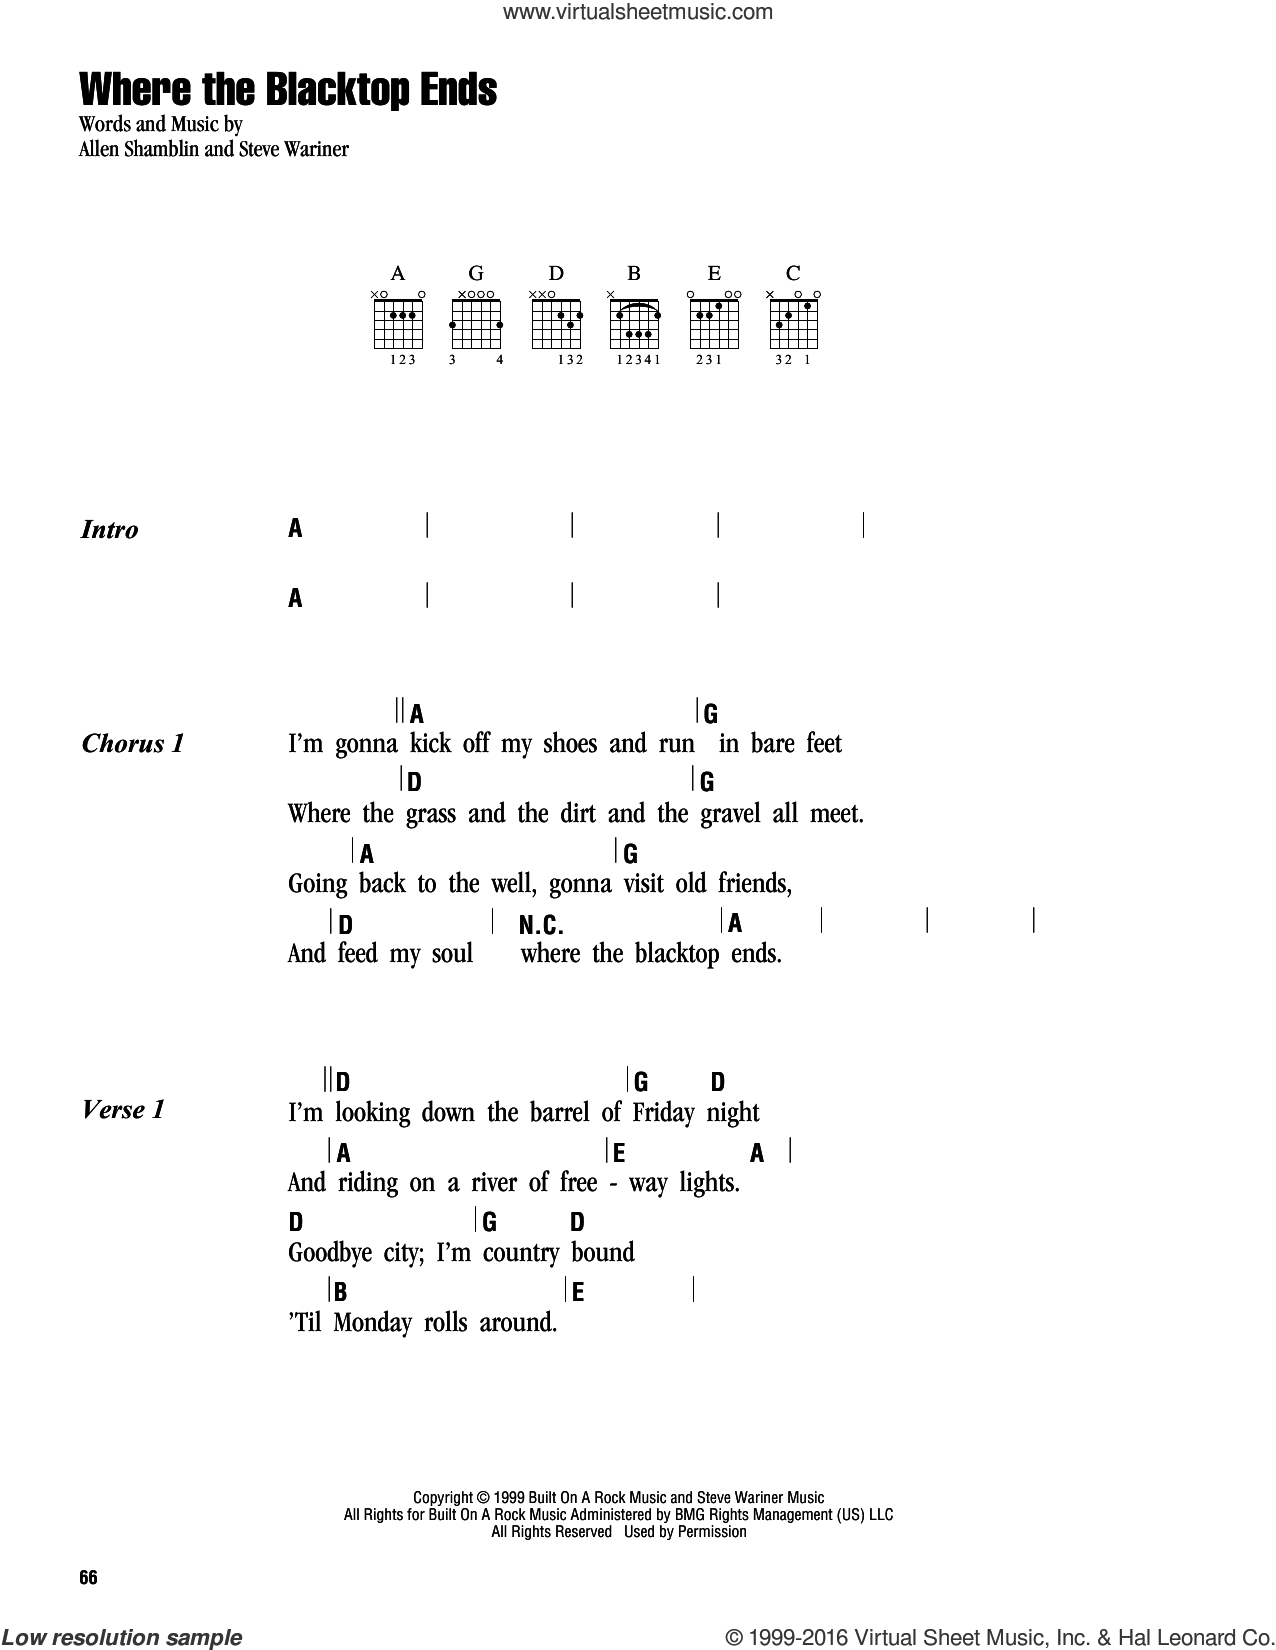 Where The Blacktop Ends sheet music for guitar (chords) by Steve Wariner